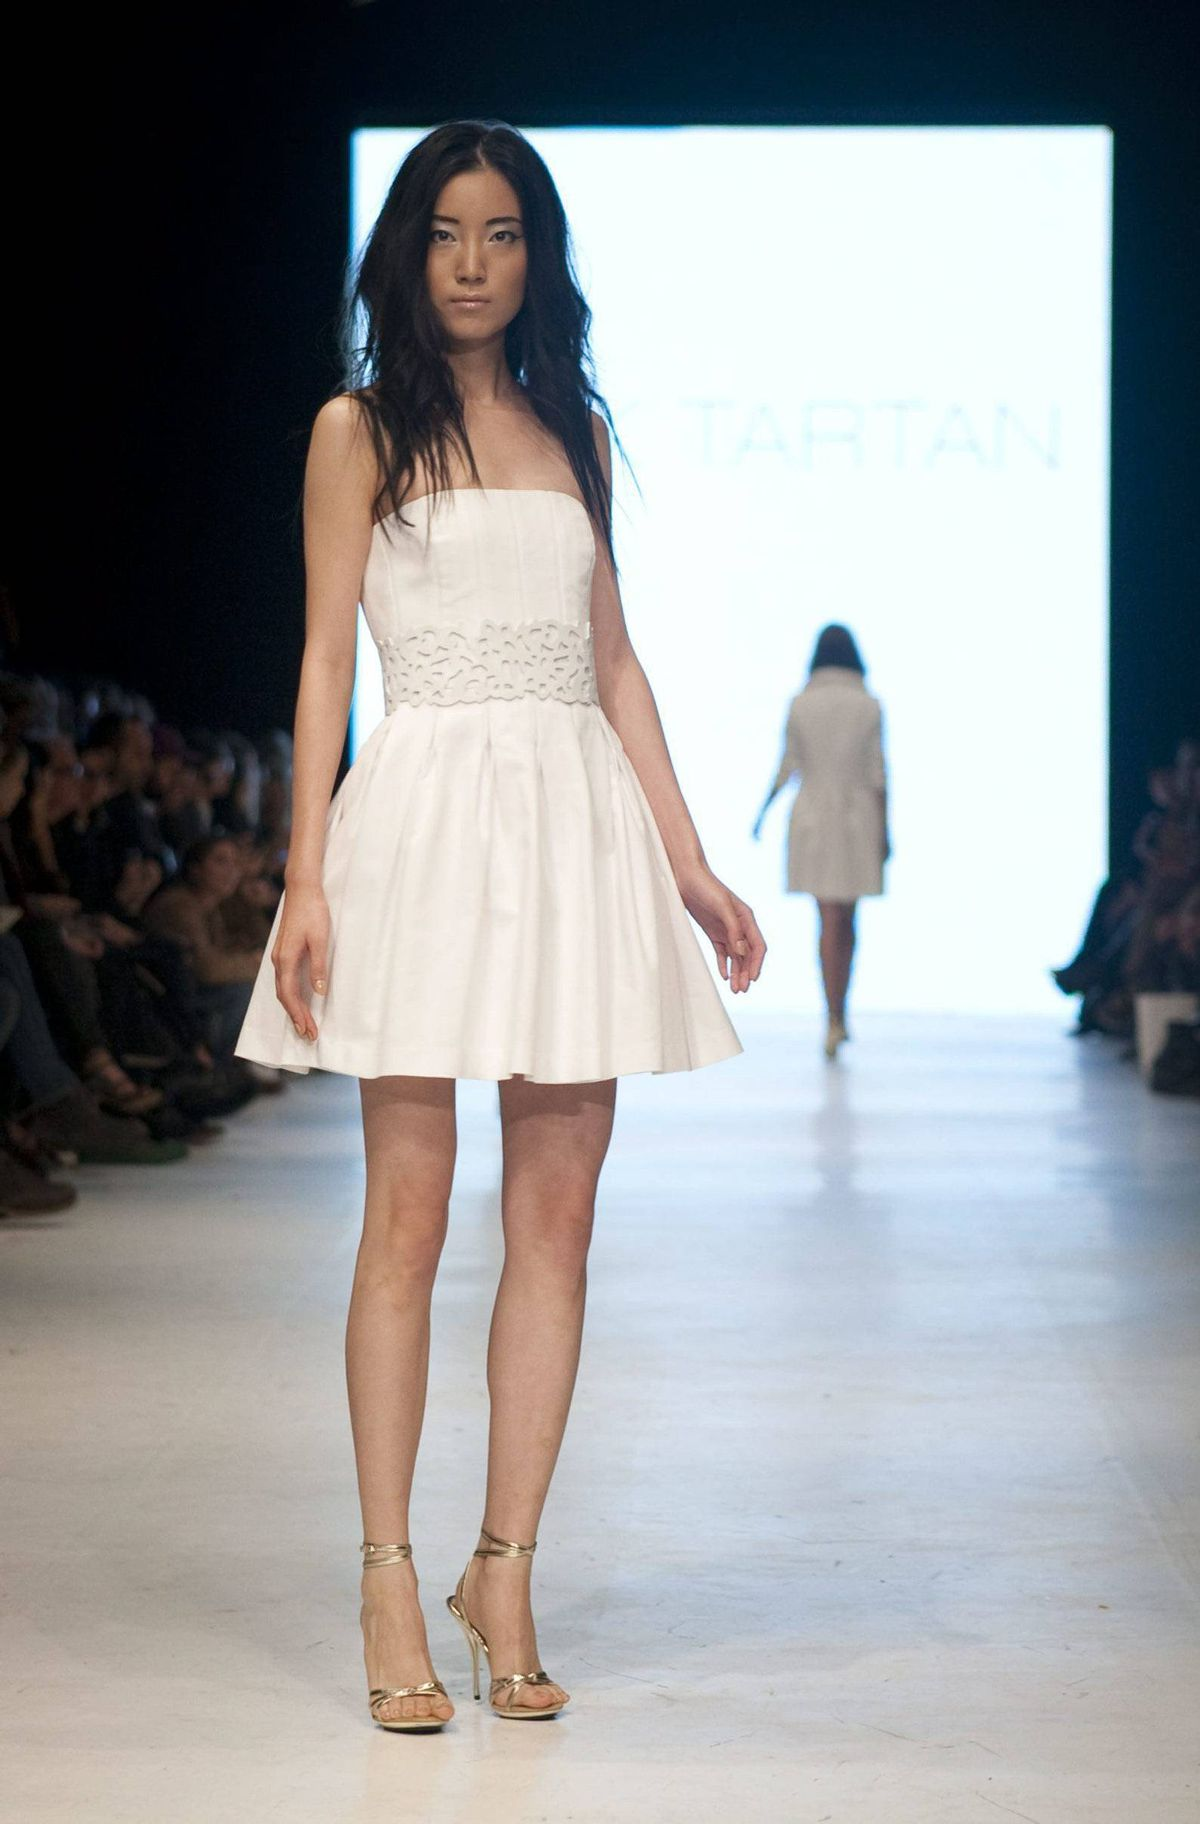 There's usually an angelic white frock or two in an uber-feminine collection like Pink Tartan. This strapless full-skirted number was delicate in texture and movement and sweet as a cupcake.